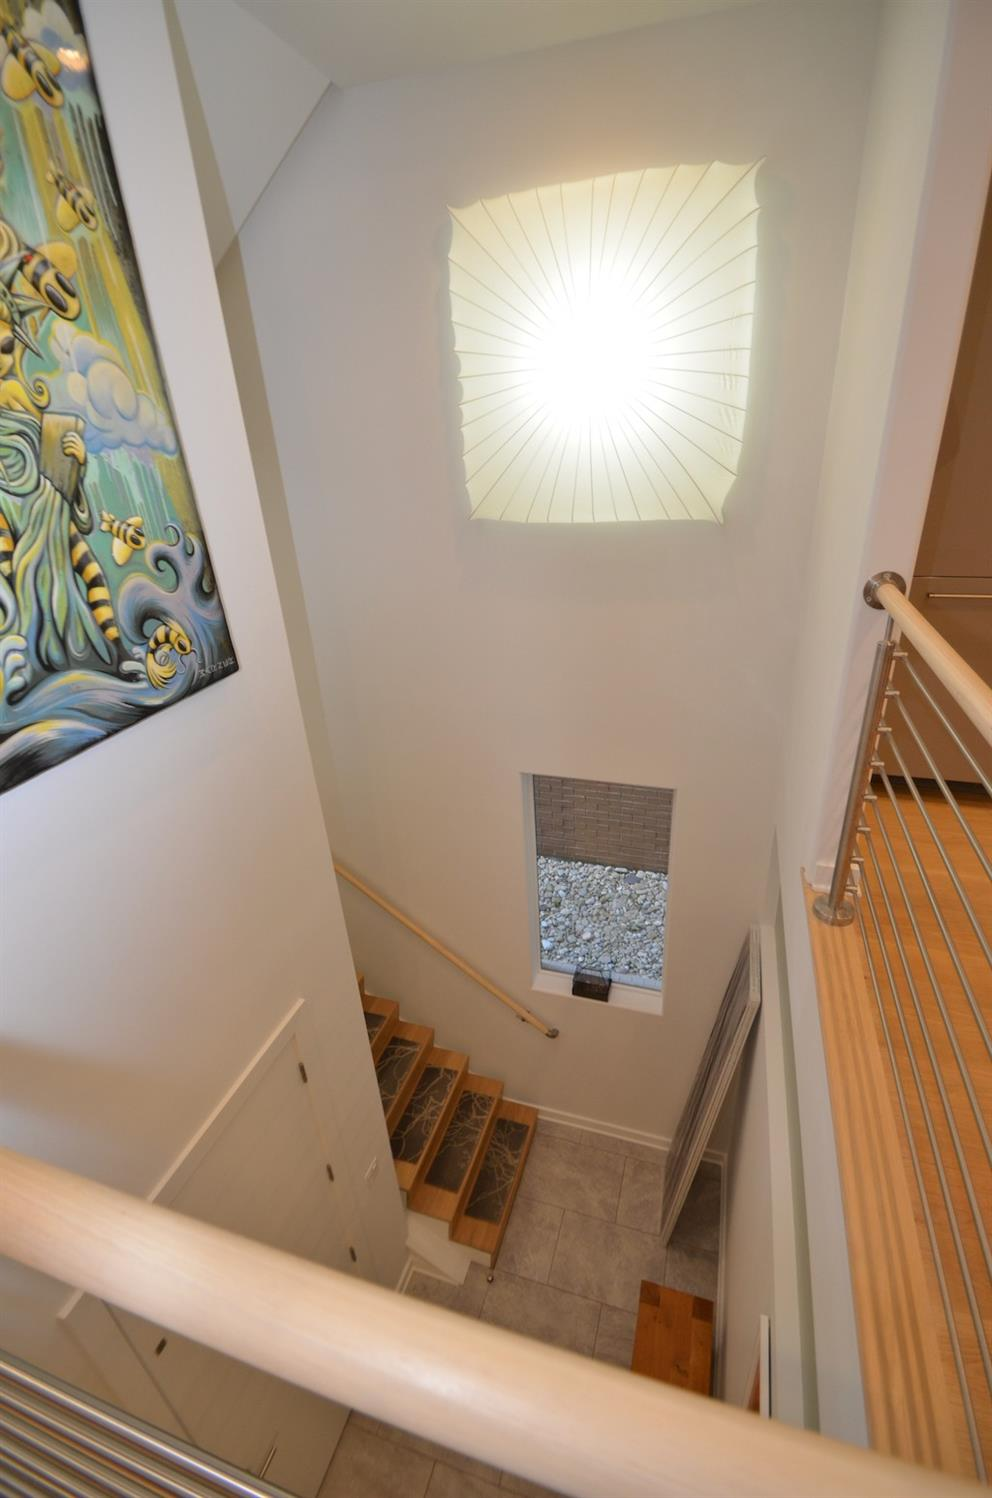 Open - yet secure - stairway is an architecturally significant statement through the core of the home.